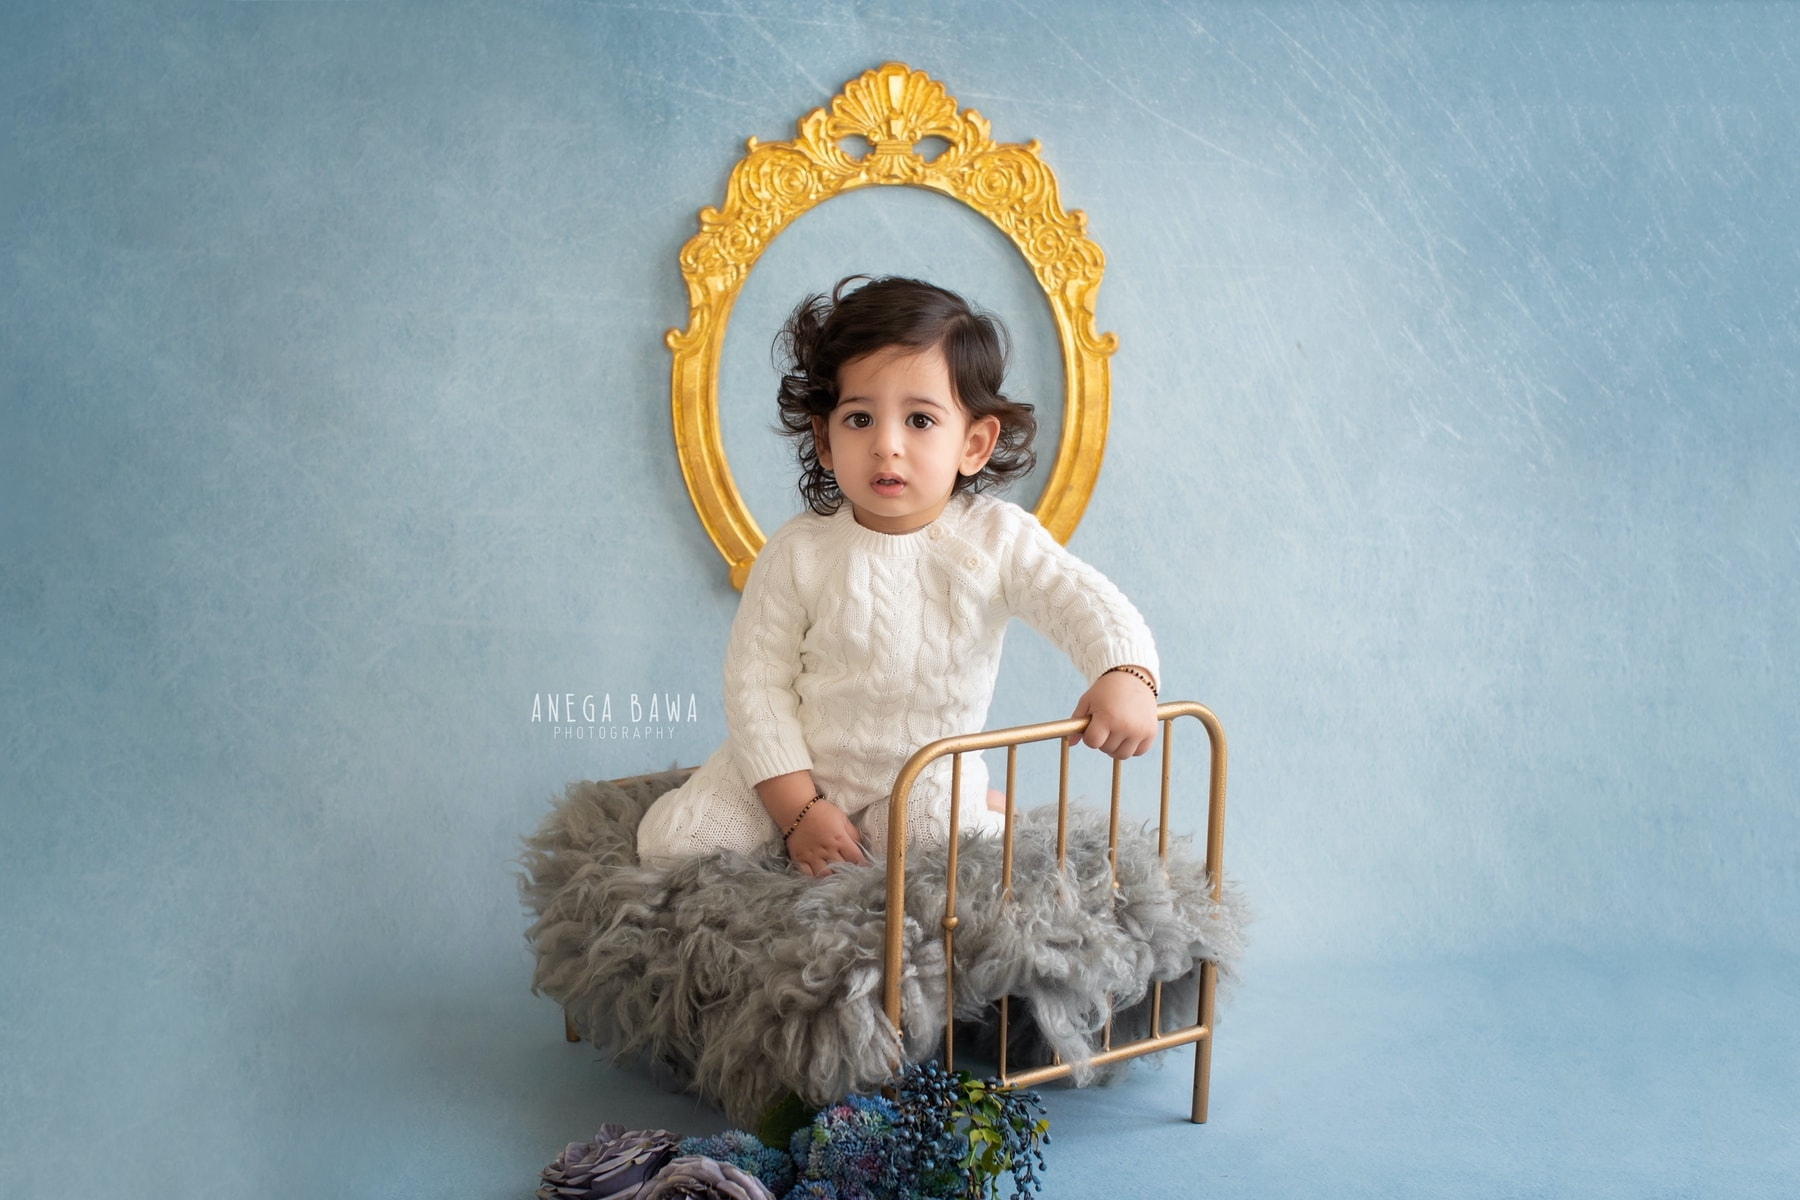 blue sitter kids photography delhi 11 12 month baby boy photoshoot gurgaon anega bawa